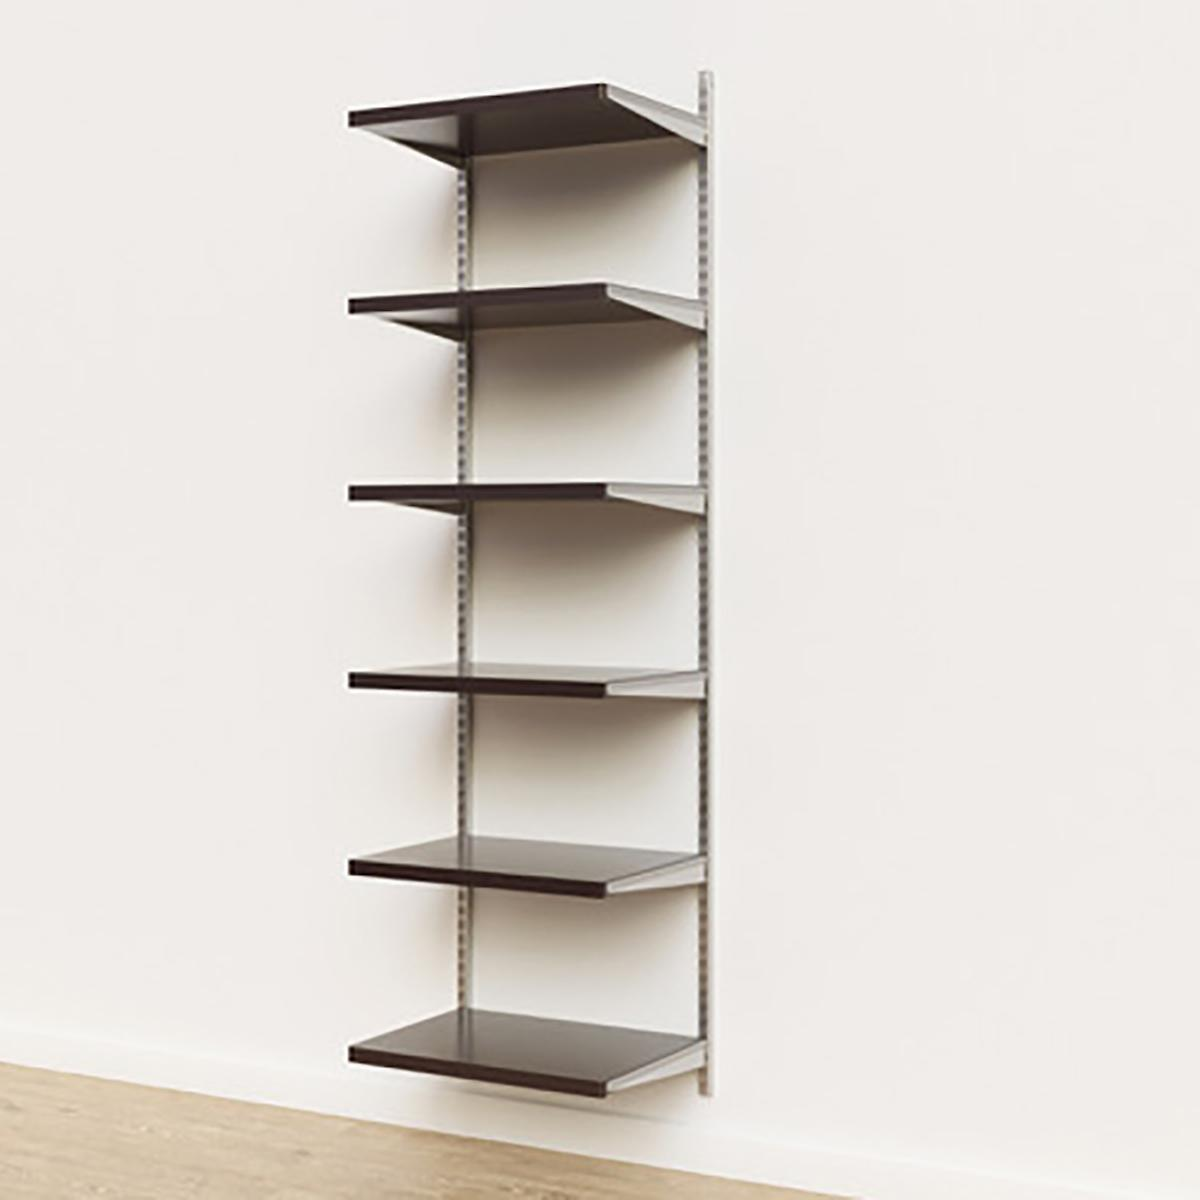 Elfa Décor 2' Platinum & Walnut Basic Shelving Units for Anywhere